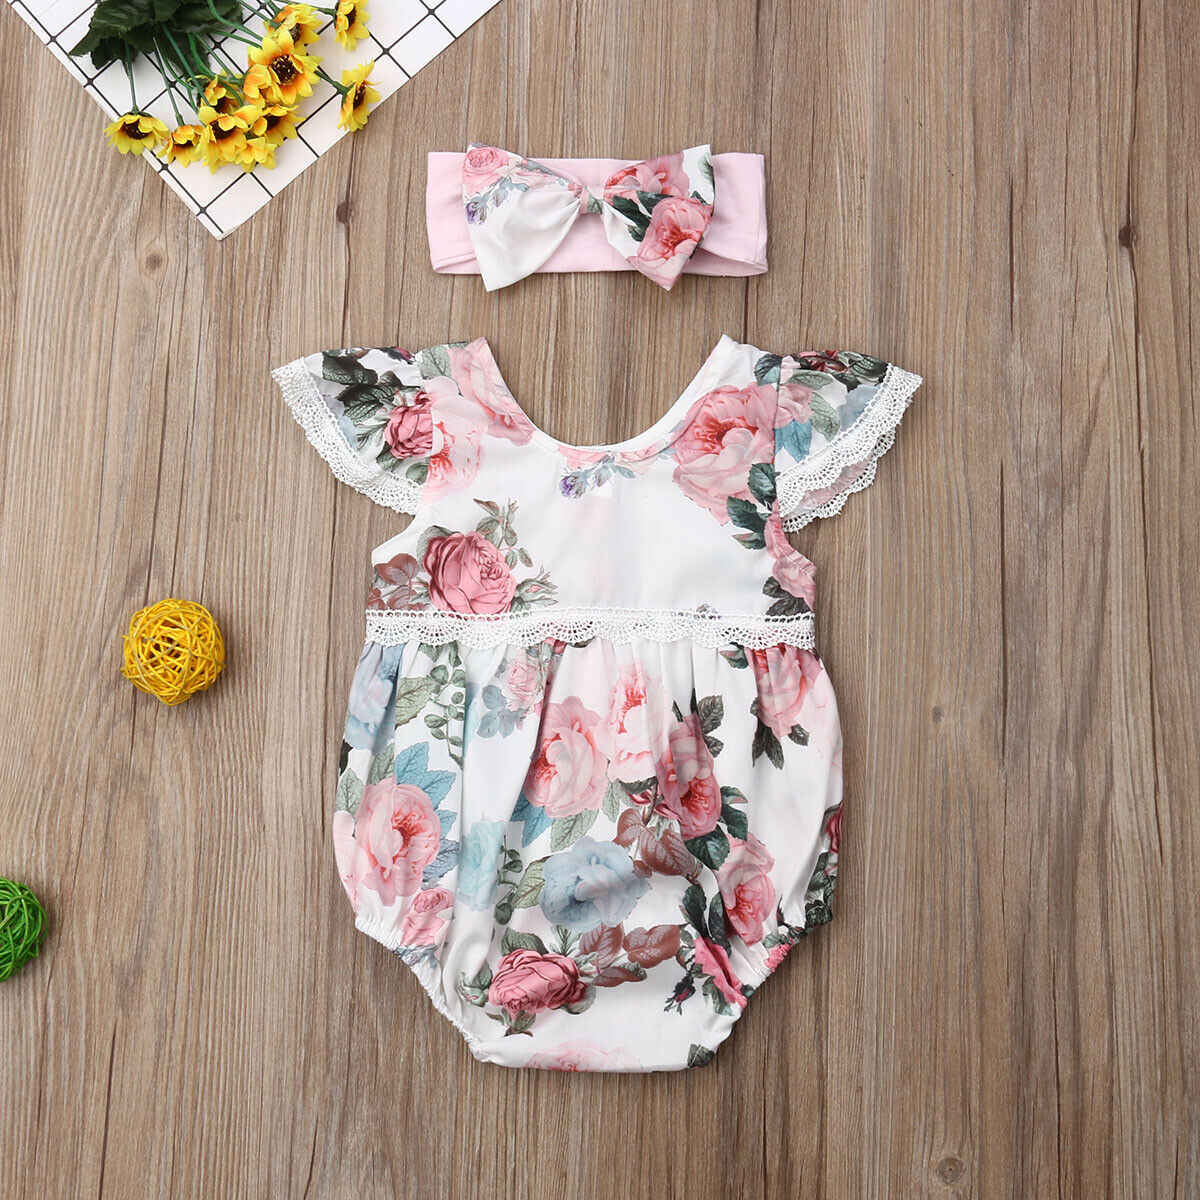 Infant Baby Strampler Body Overall Overall Kleidung Outfit Stirnband